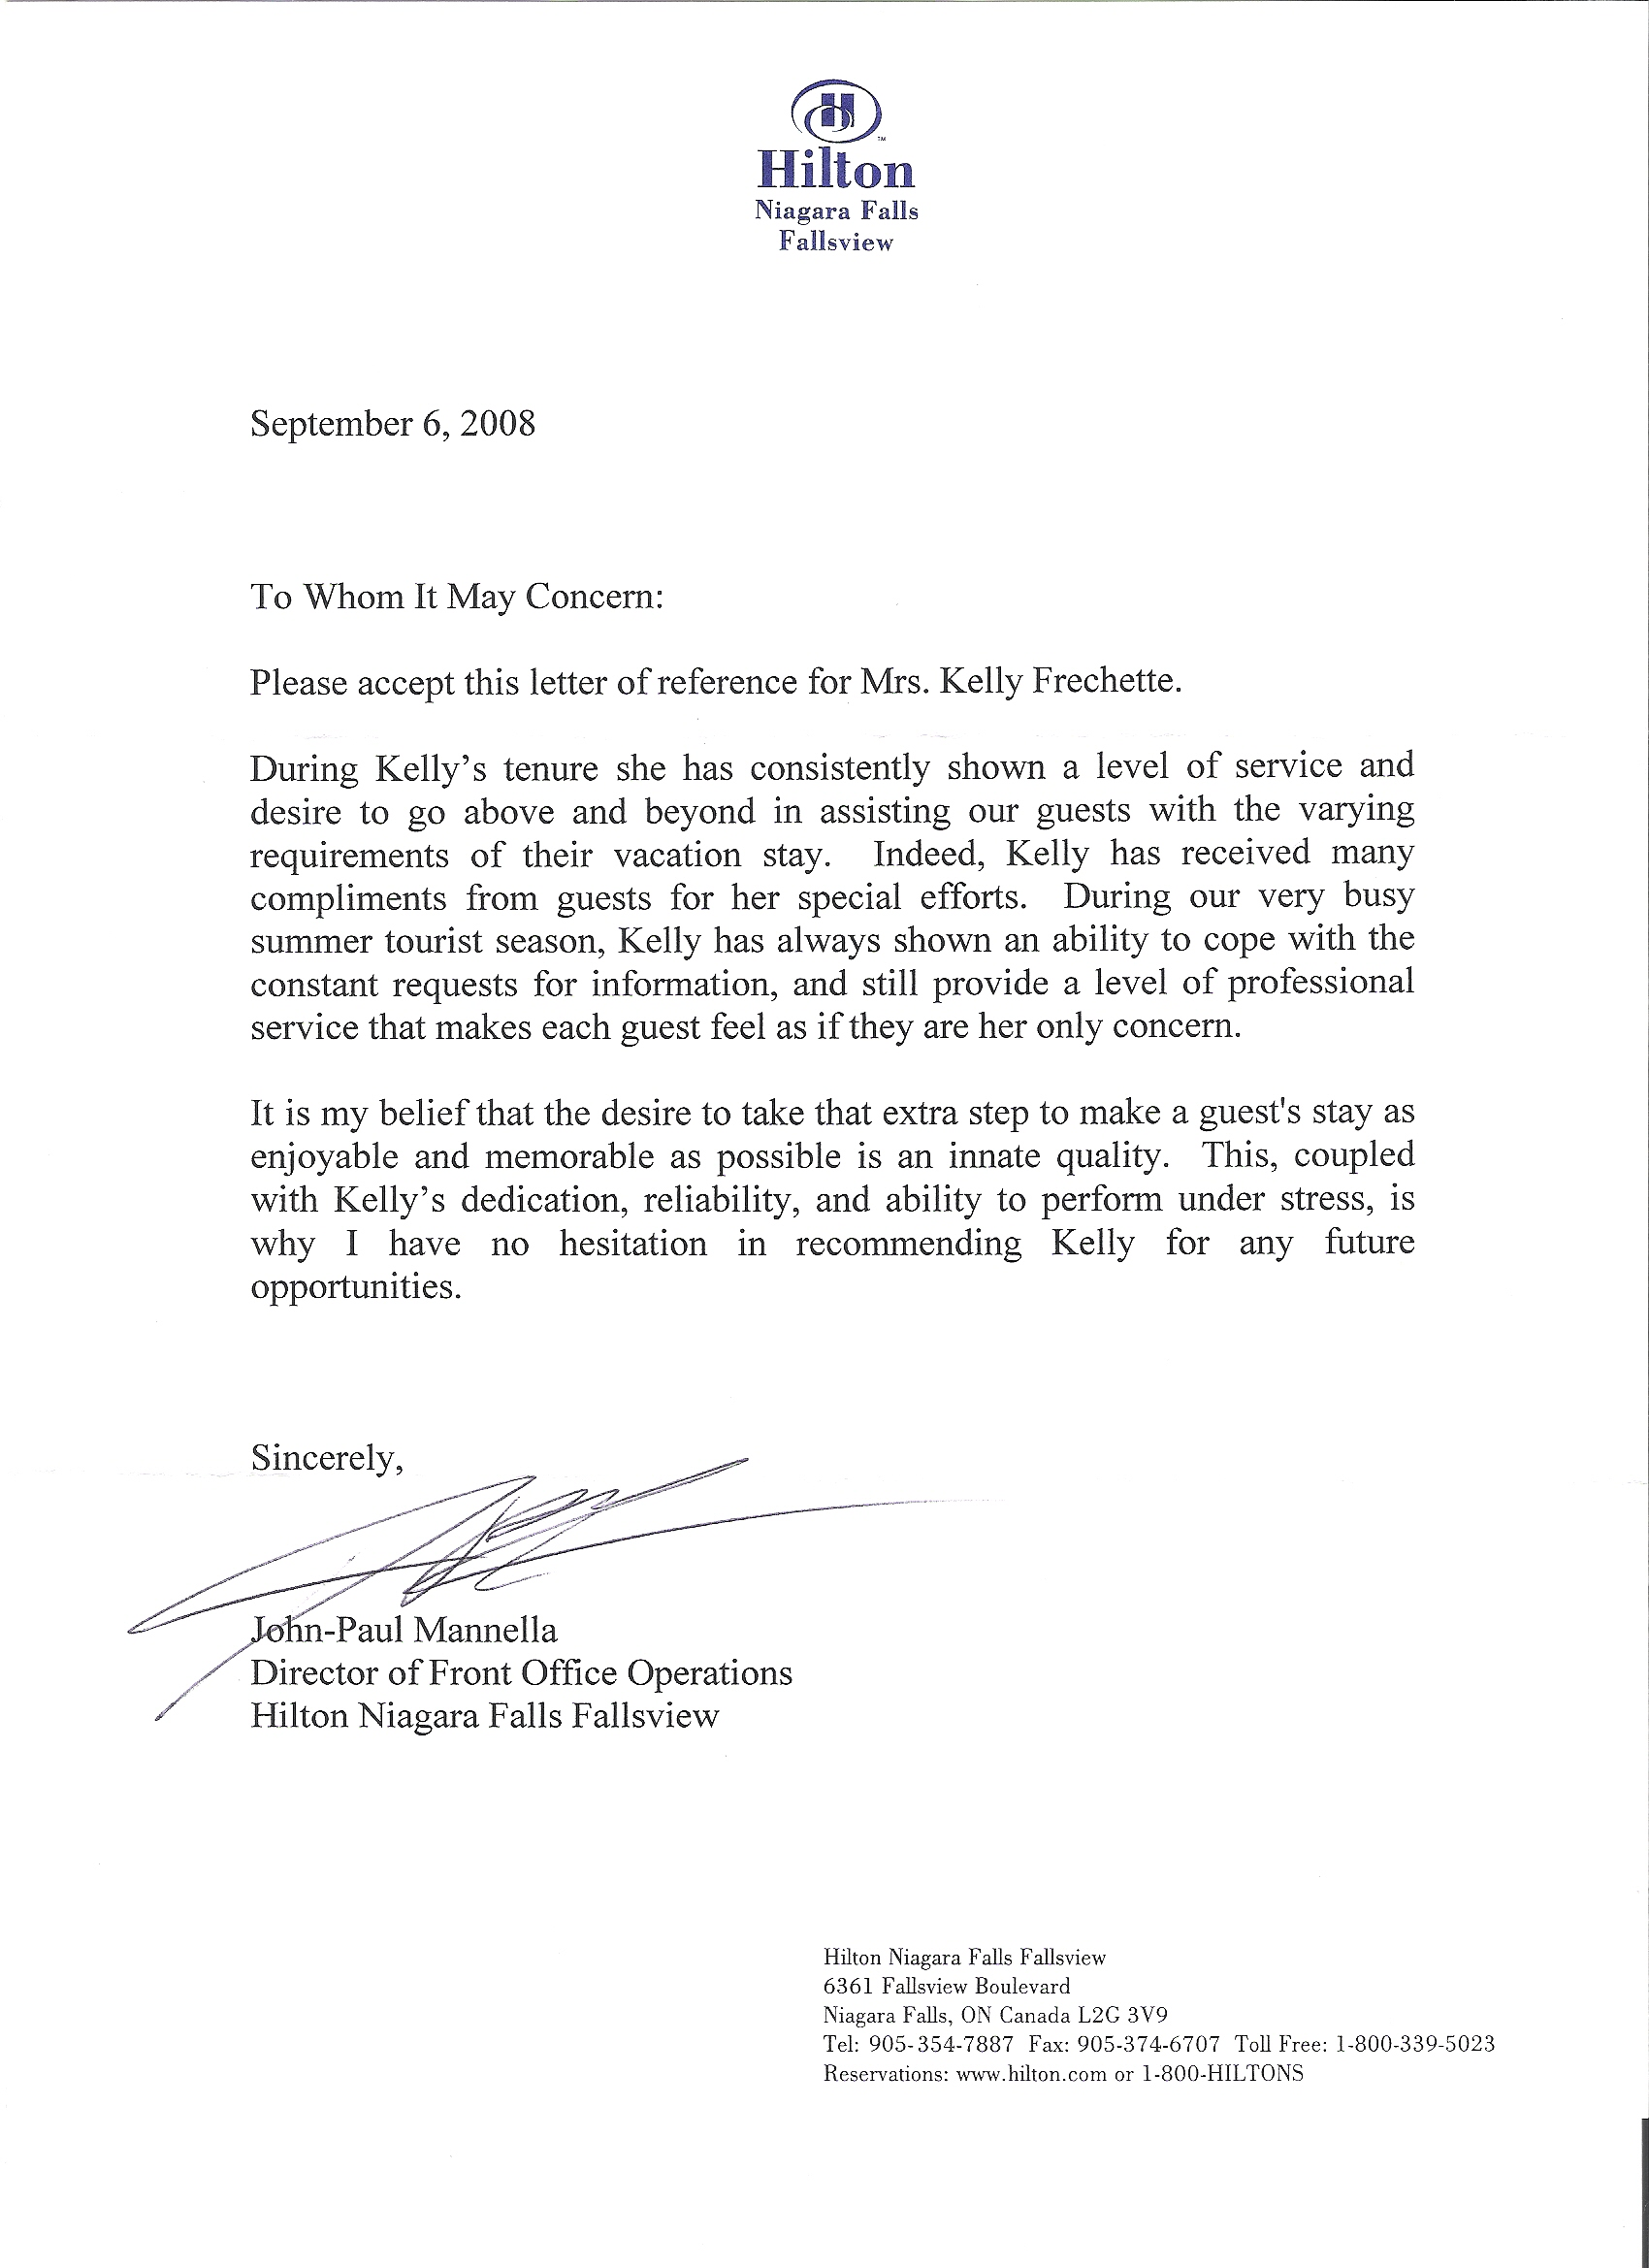 Best Recommendation Letter For Bosser Work Reference Job Graduate